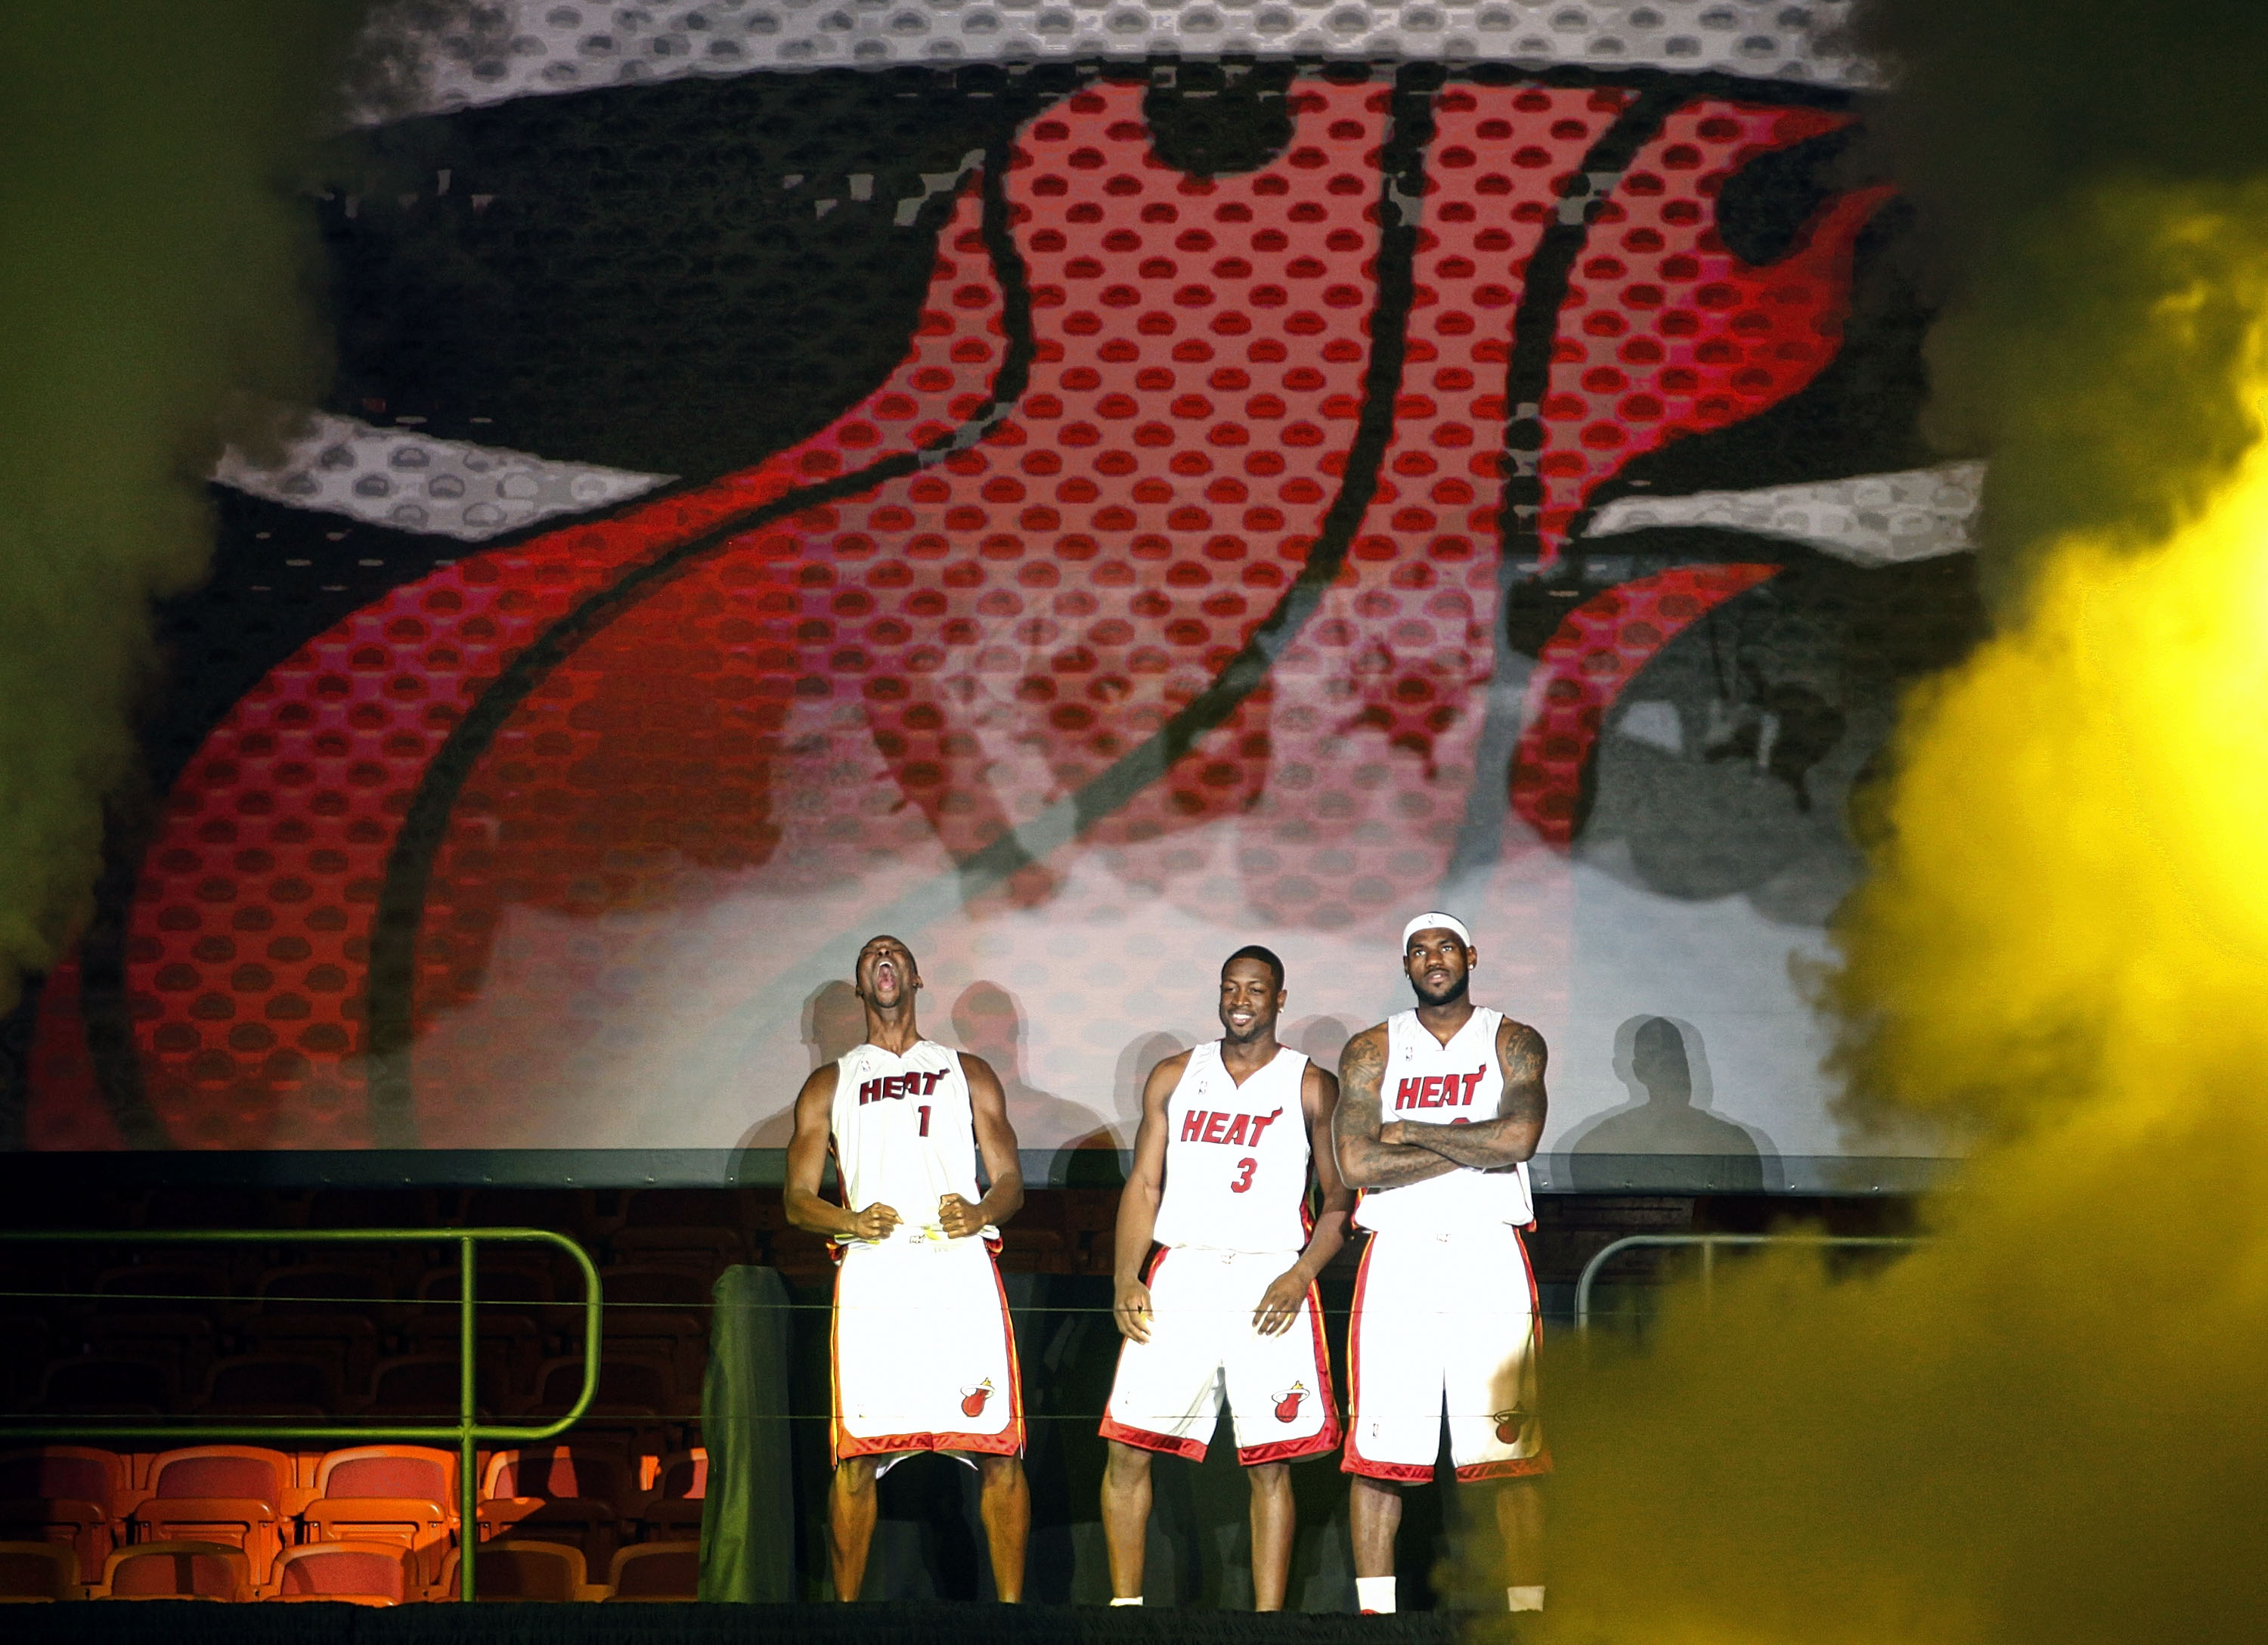 MIAMI - JULY 09:  Fans cheer as (L-R) Chris Bosh #1, Dwyane Wade #3, and LeBron James #6 of the Miami Heat are introduced during a welcome party at American Airlines Arena on July 9, 2010 in Miami, Florida.  (Photo by Marc Serota/Getty Images)